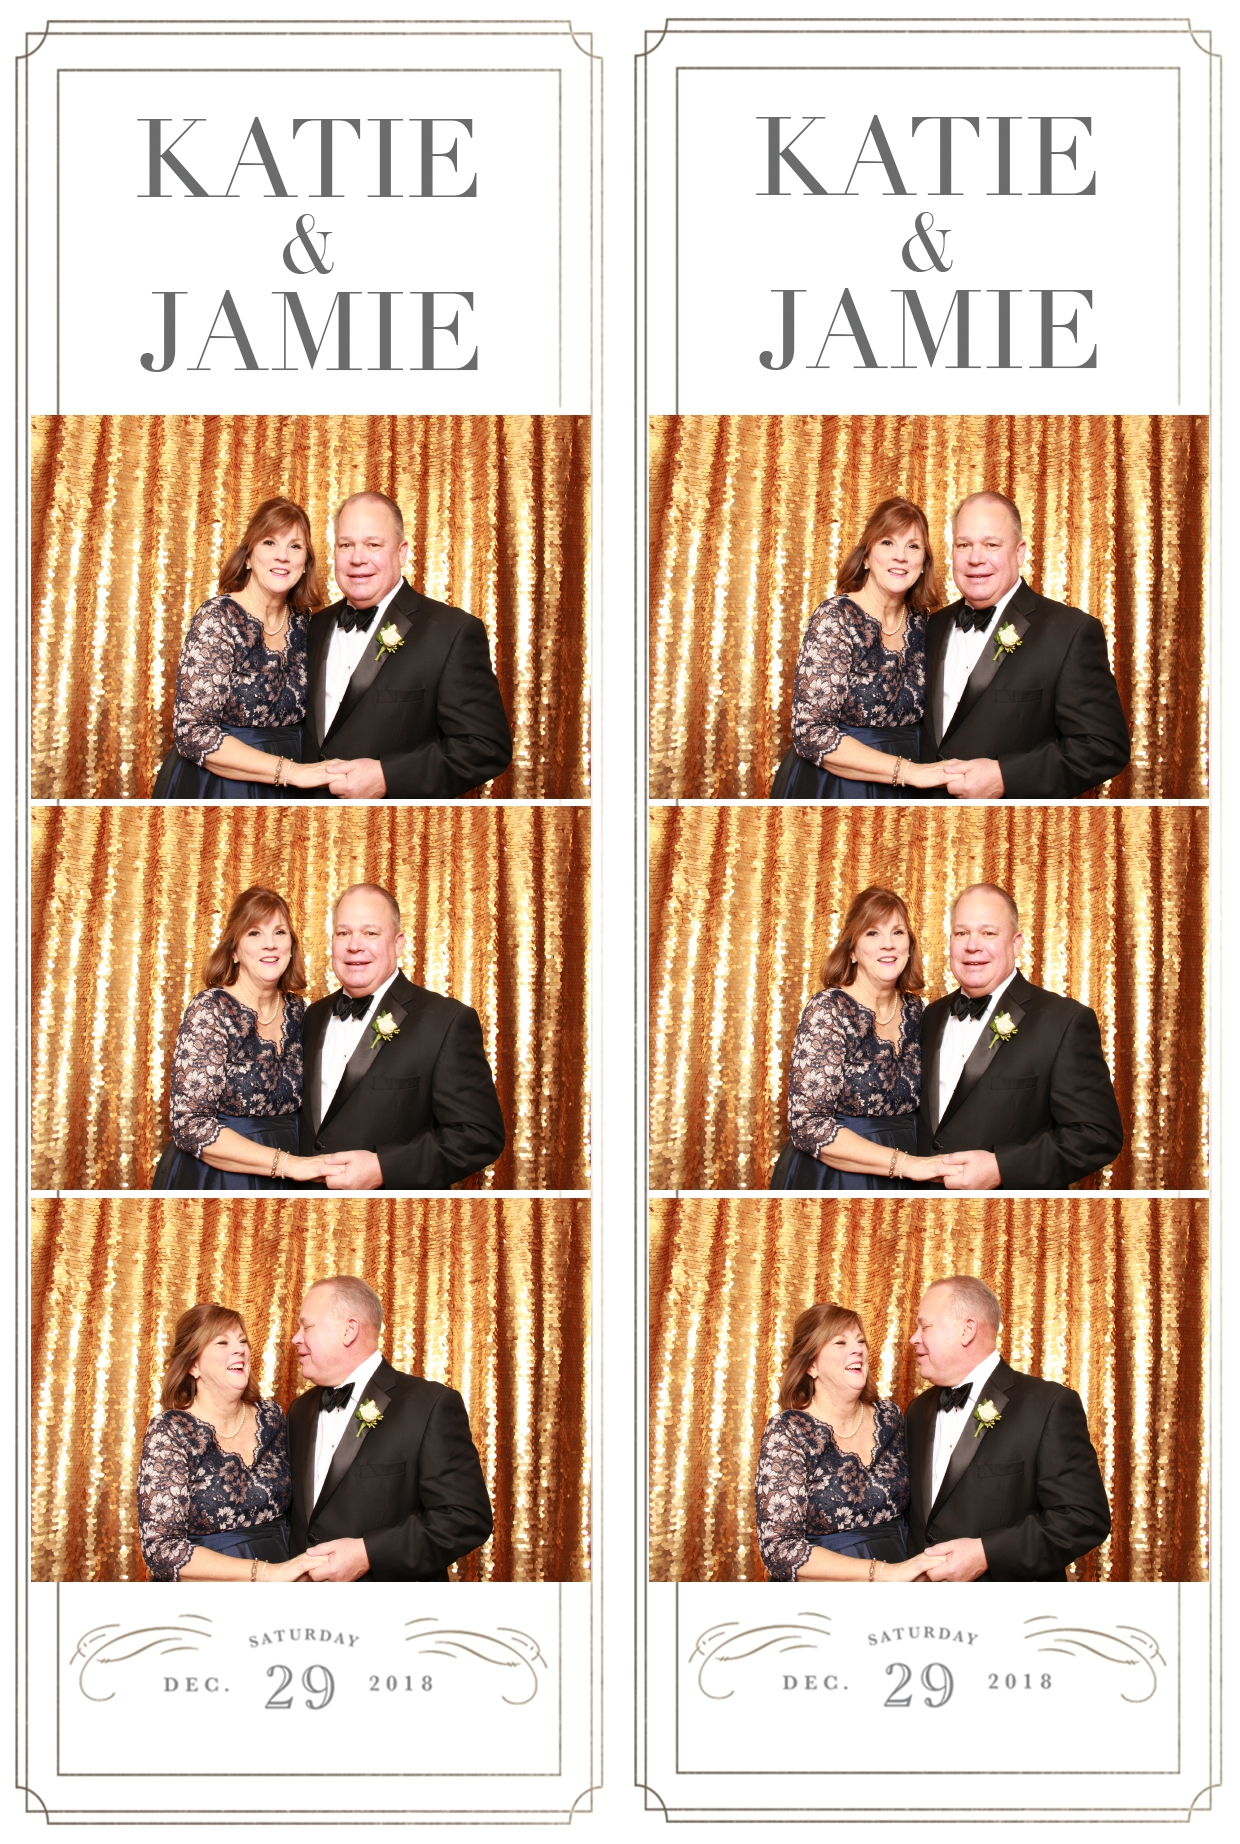 Oh Happy Day Booth - Katie and Jamie Customized27.jpg